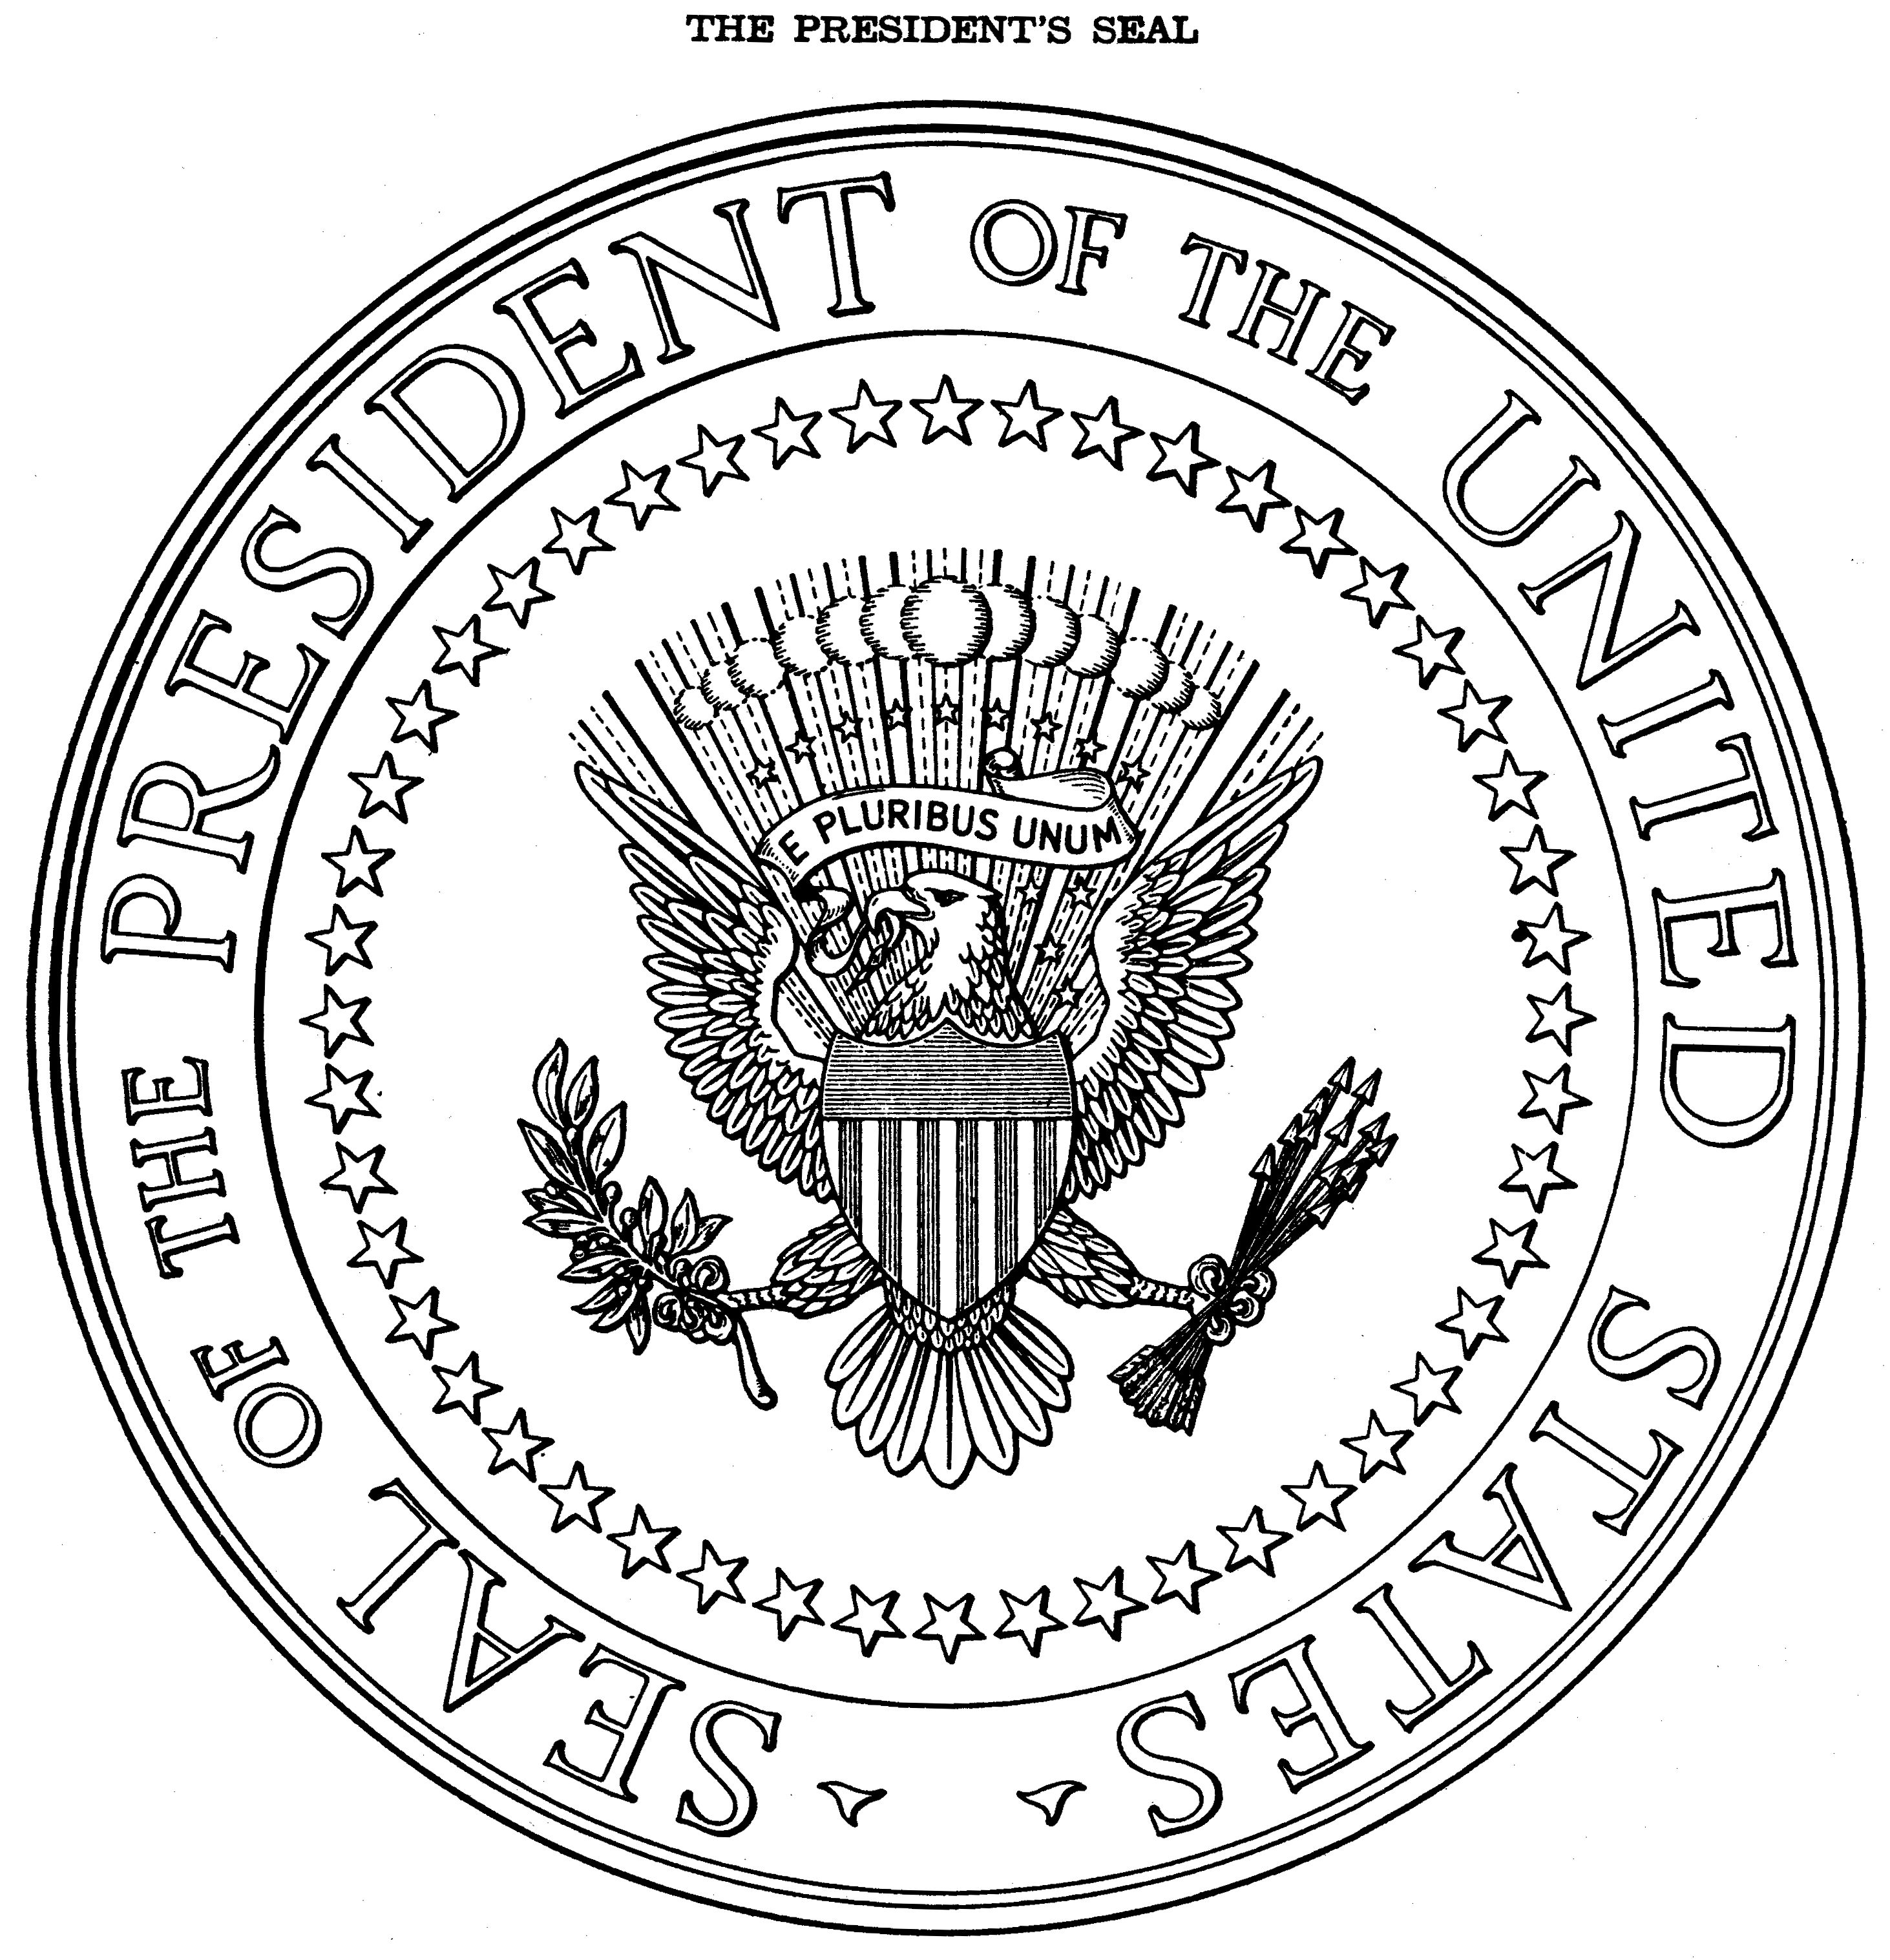 Presidential Seal Coloring Page Az Coloring Pages Presidential Seal Coloring Page